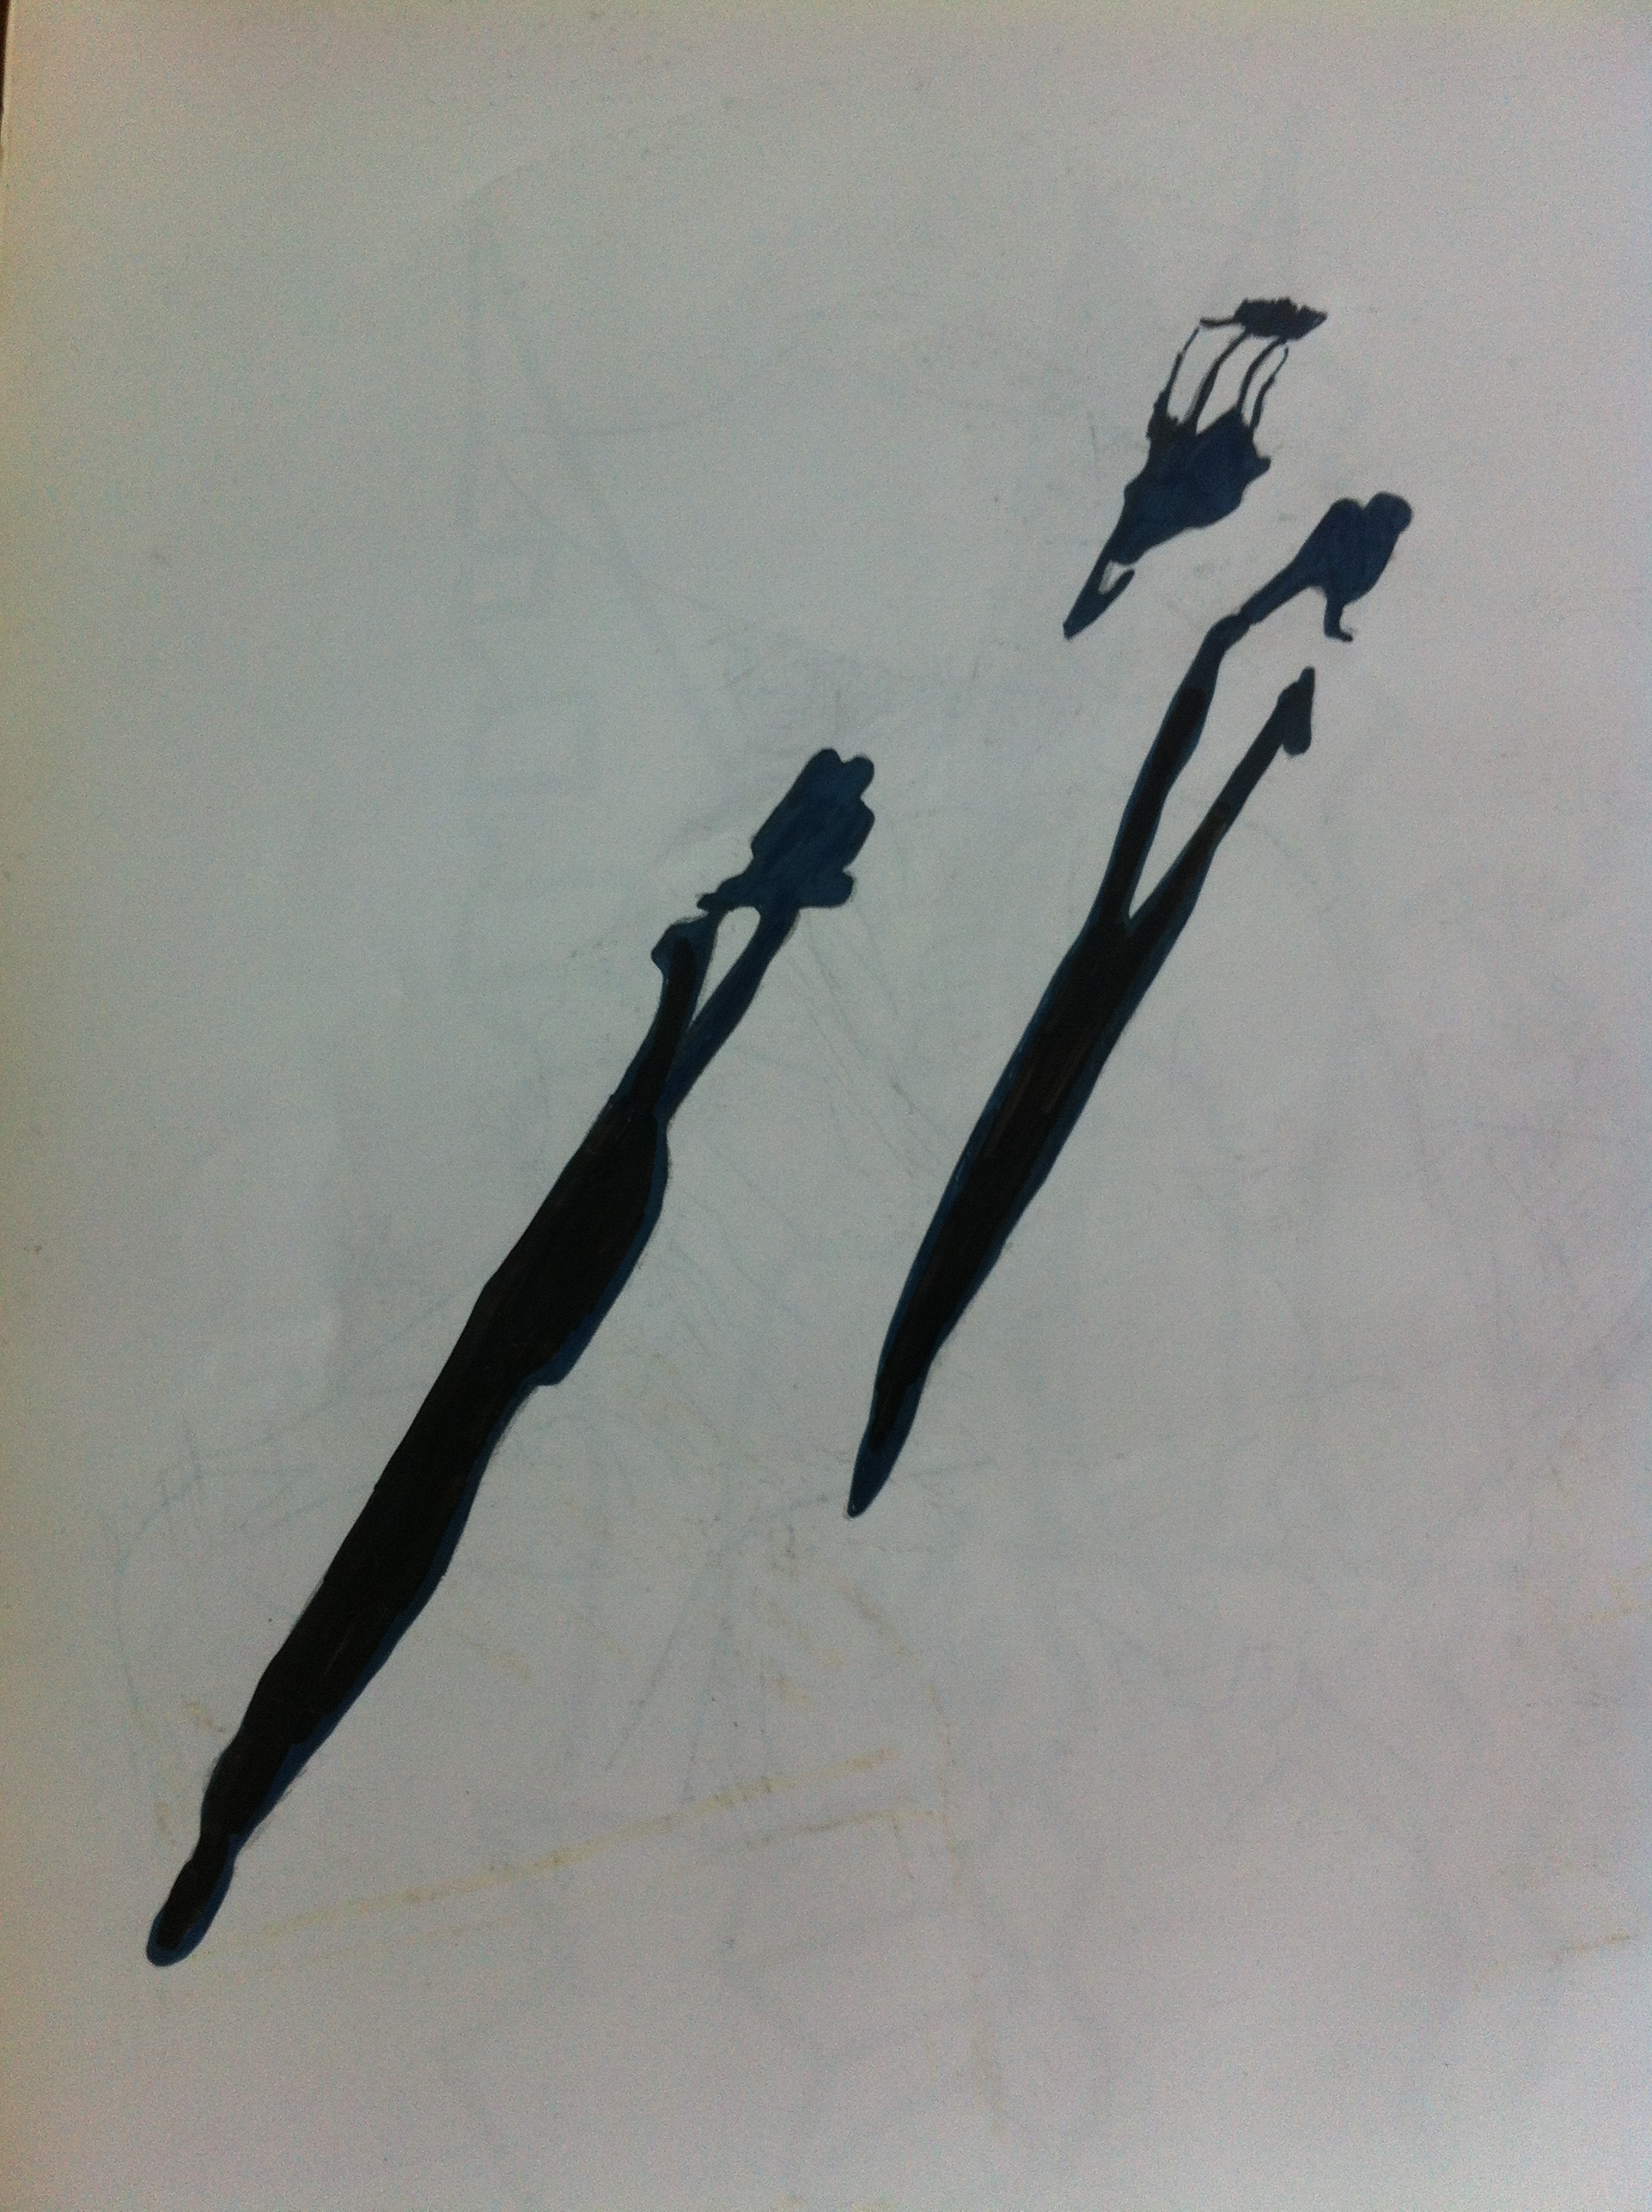 Sketch of shadows in Katowice, Poland by Ali Dunnell